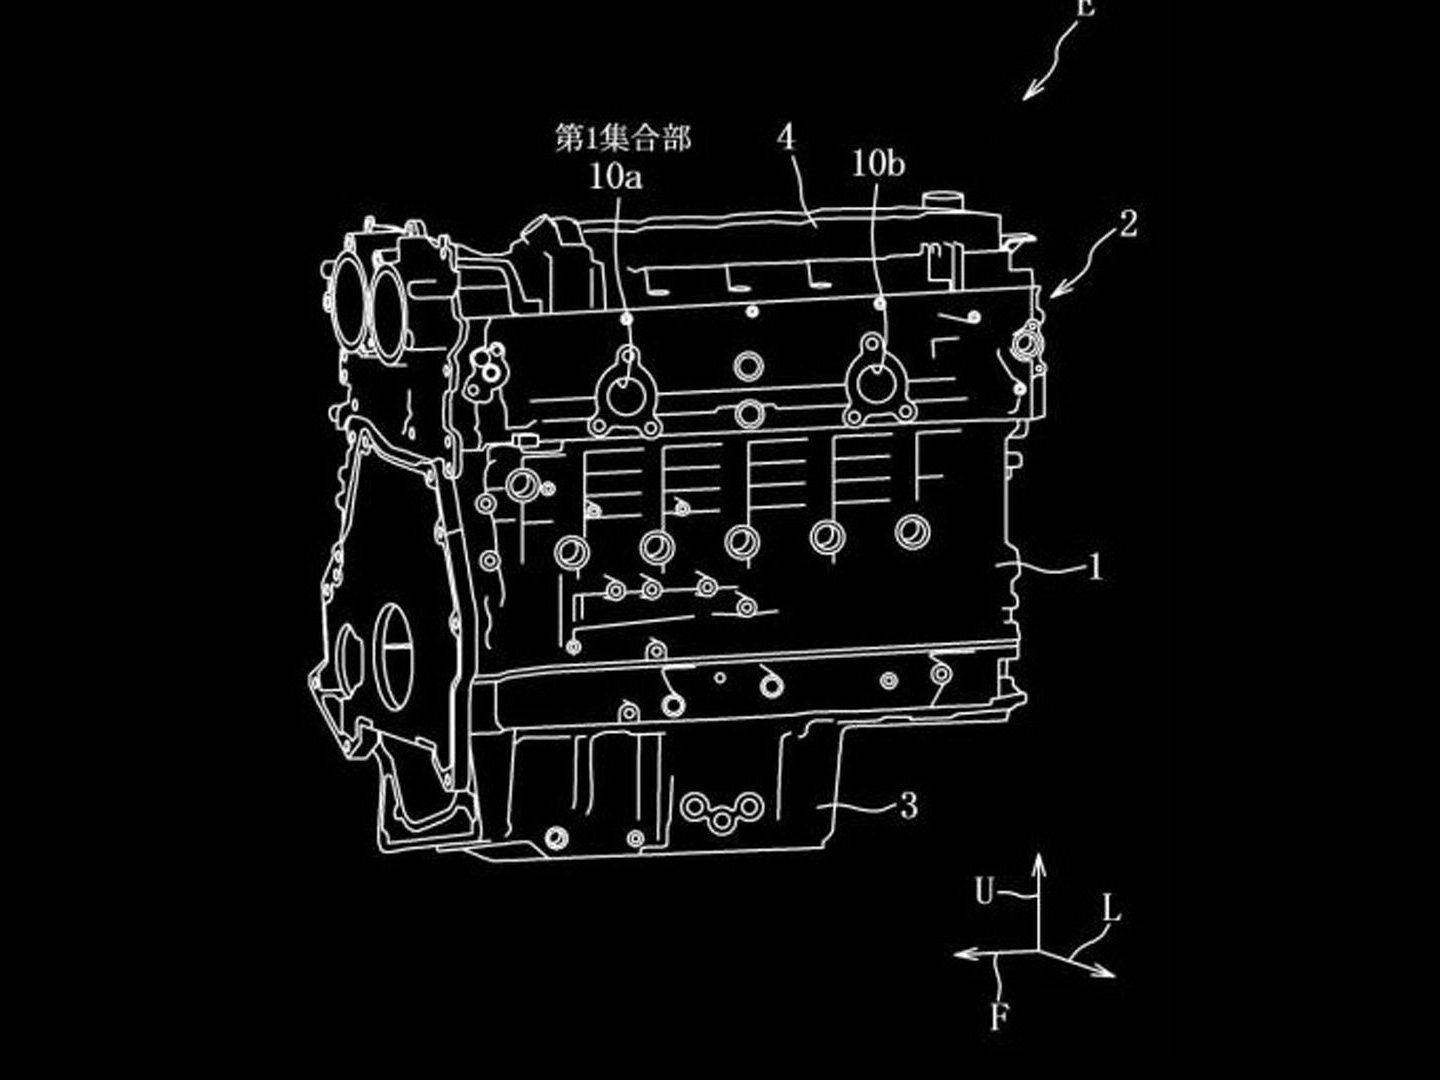 [DIAGRAM_34OR]  Mazda patent filing sheds light on rumored straight-six engine   Hagerty  Media   Chevy Straight Six Engine Diagram      Hagerty